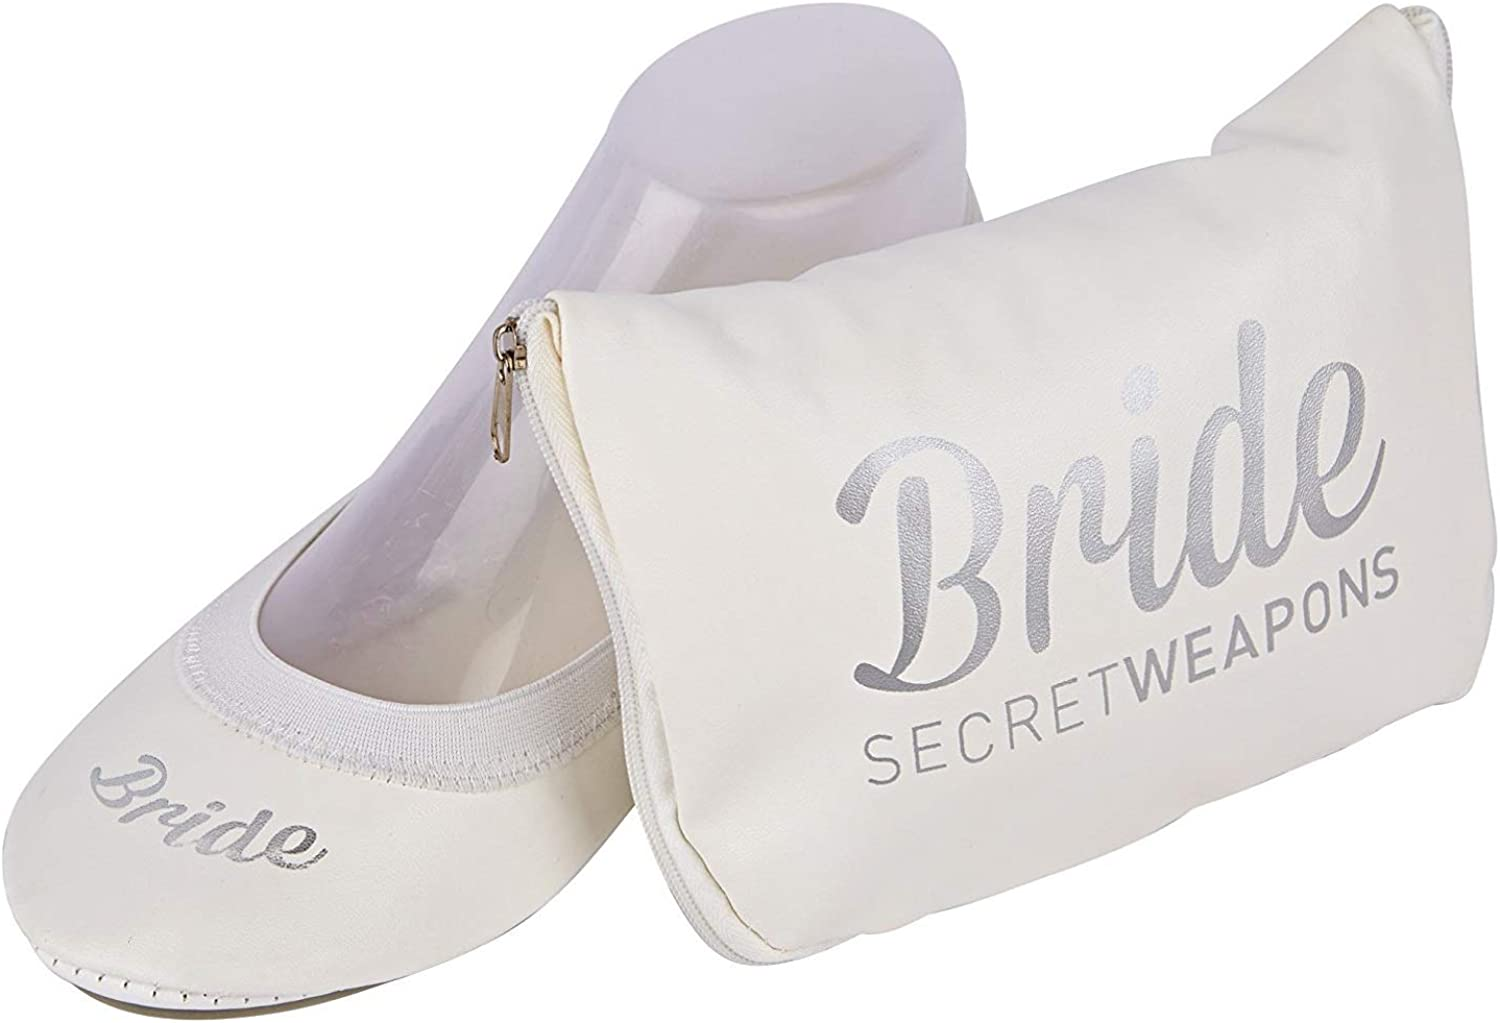 SECRET WEAPONS White Bride Fold Up Ballet Flats-White Foldable shoes with Bride Print-Cute Purse & Tote Carry Bag